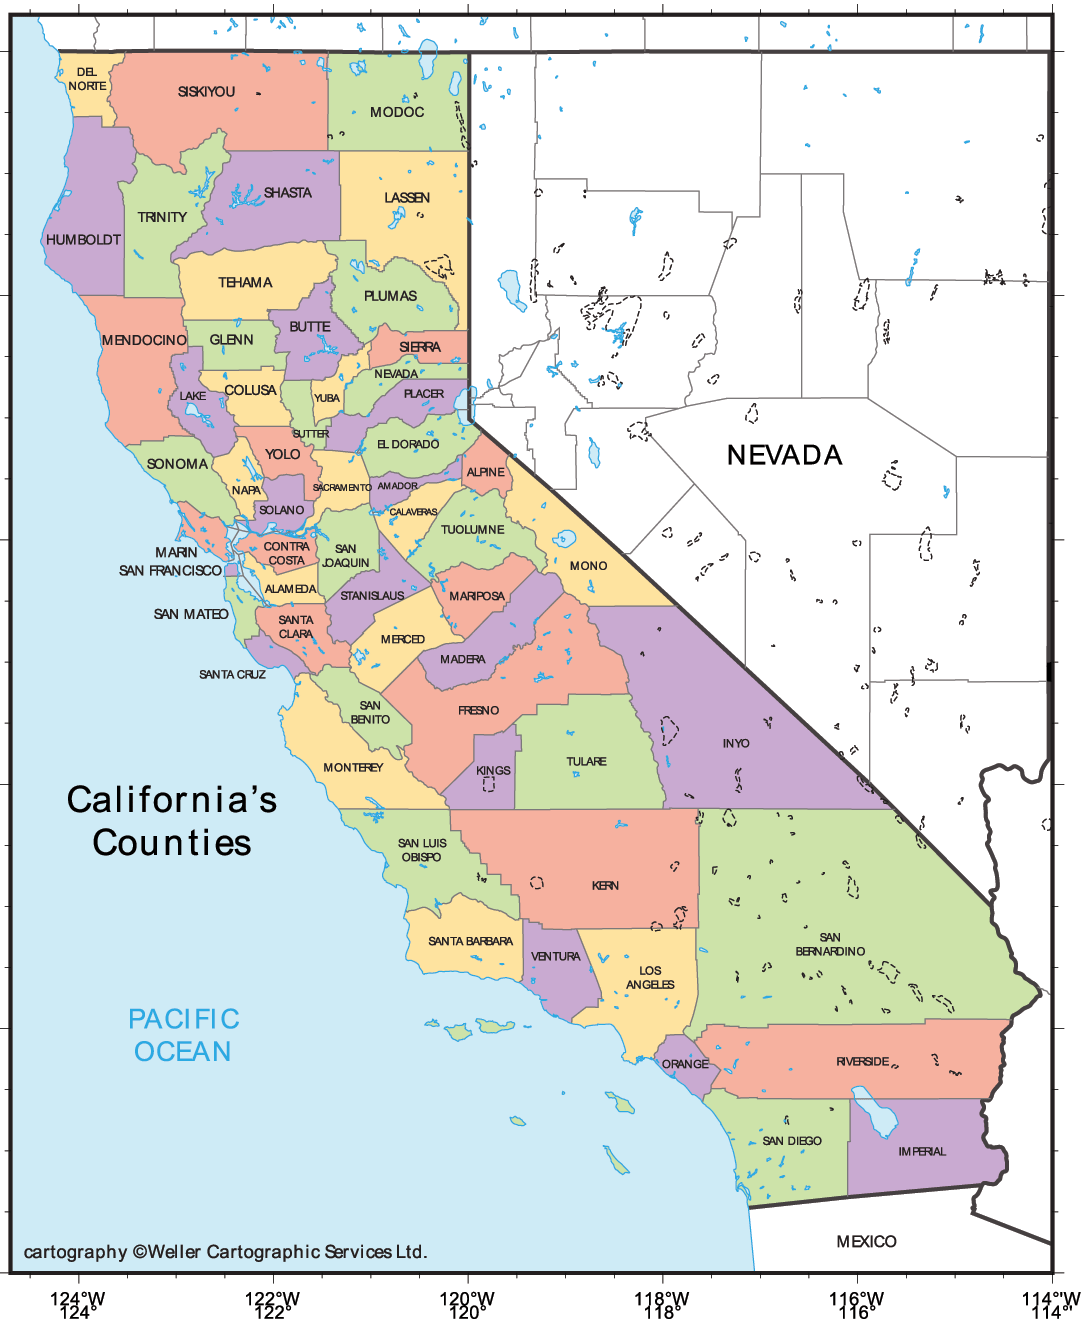 California Cities Map | California city map, California map ...